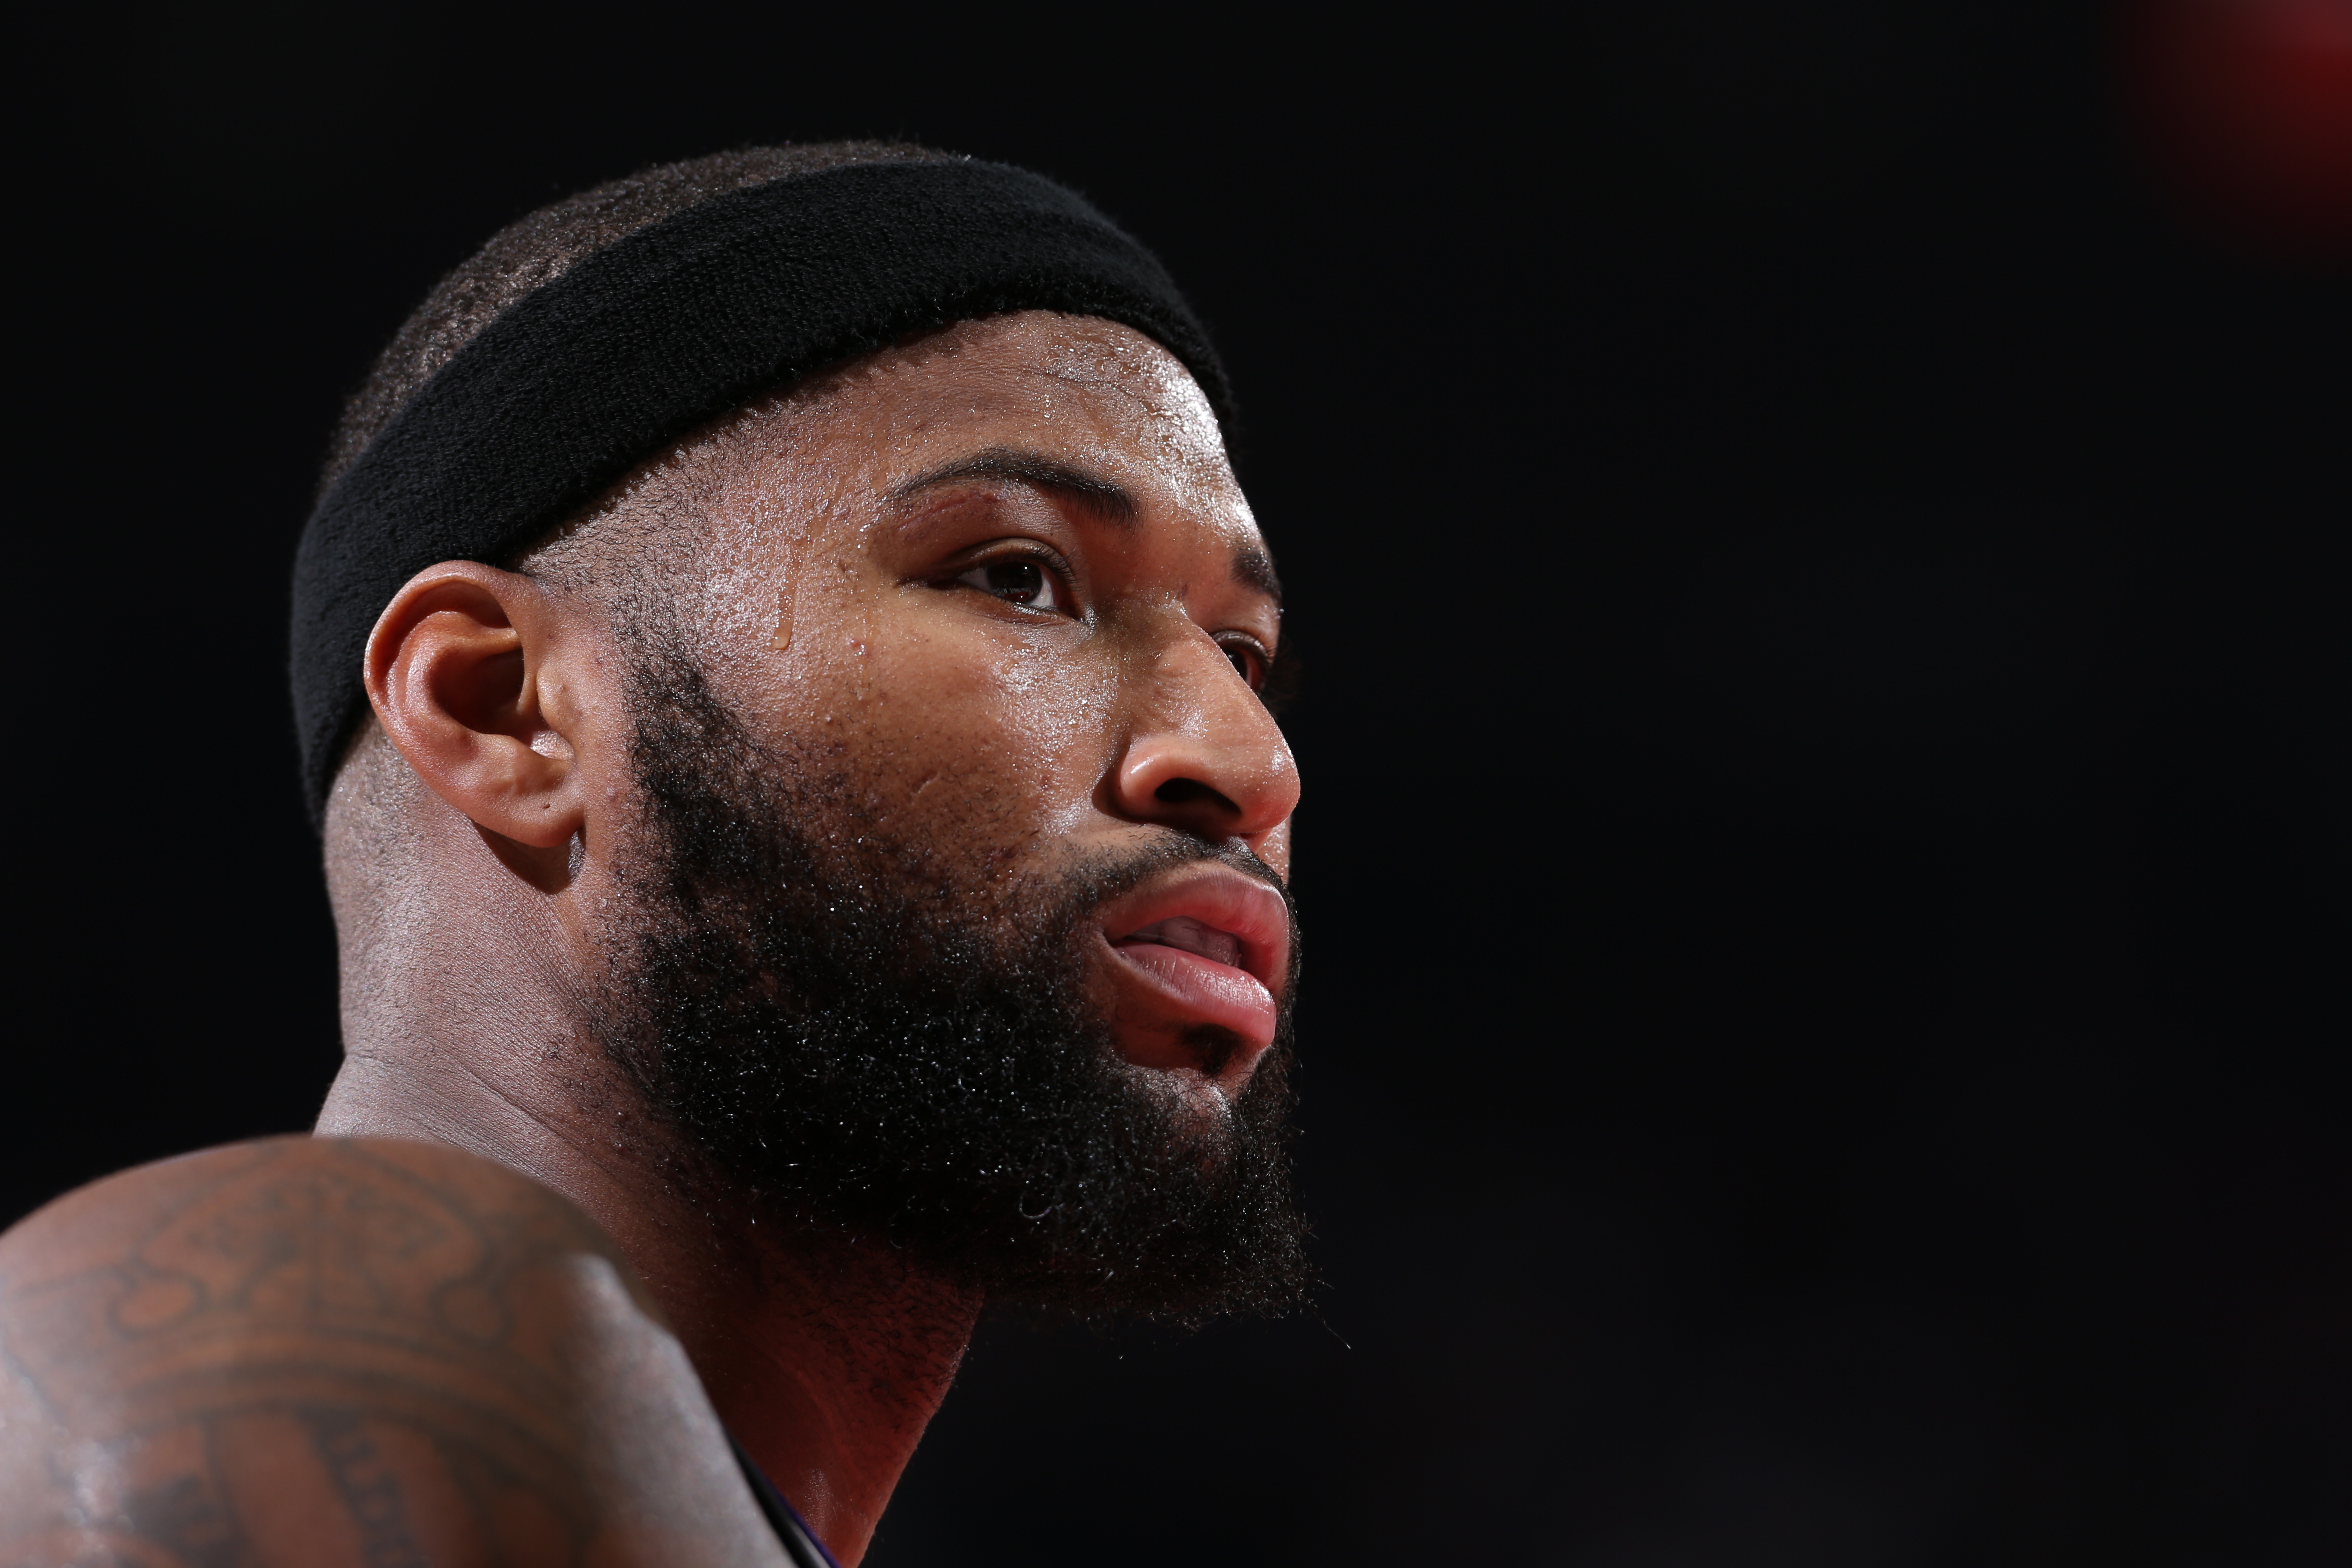 DeMarcus Cousins #15 of the Sacramento Kings is seen during the game against the Portland Trail Blazers on December 28, 2016 at the Moda Center in Portland, Oregon.